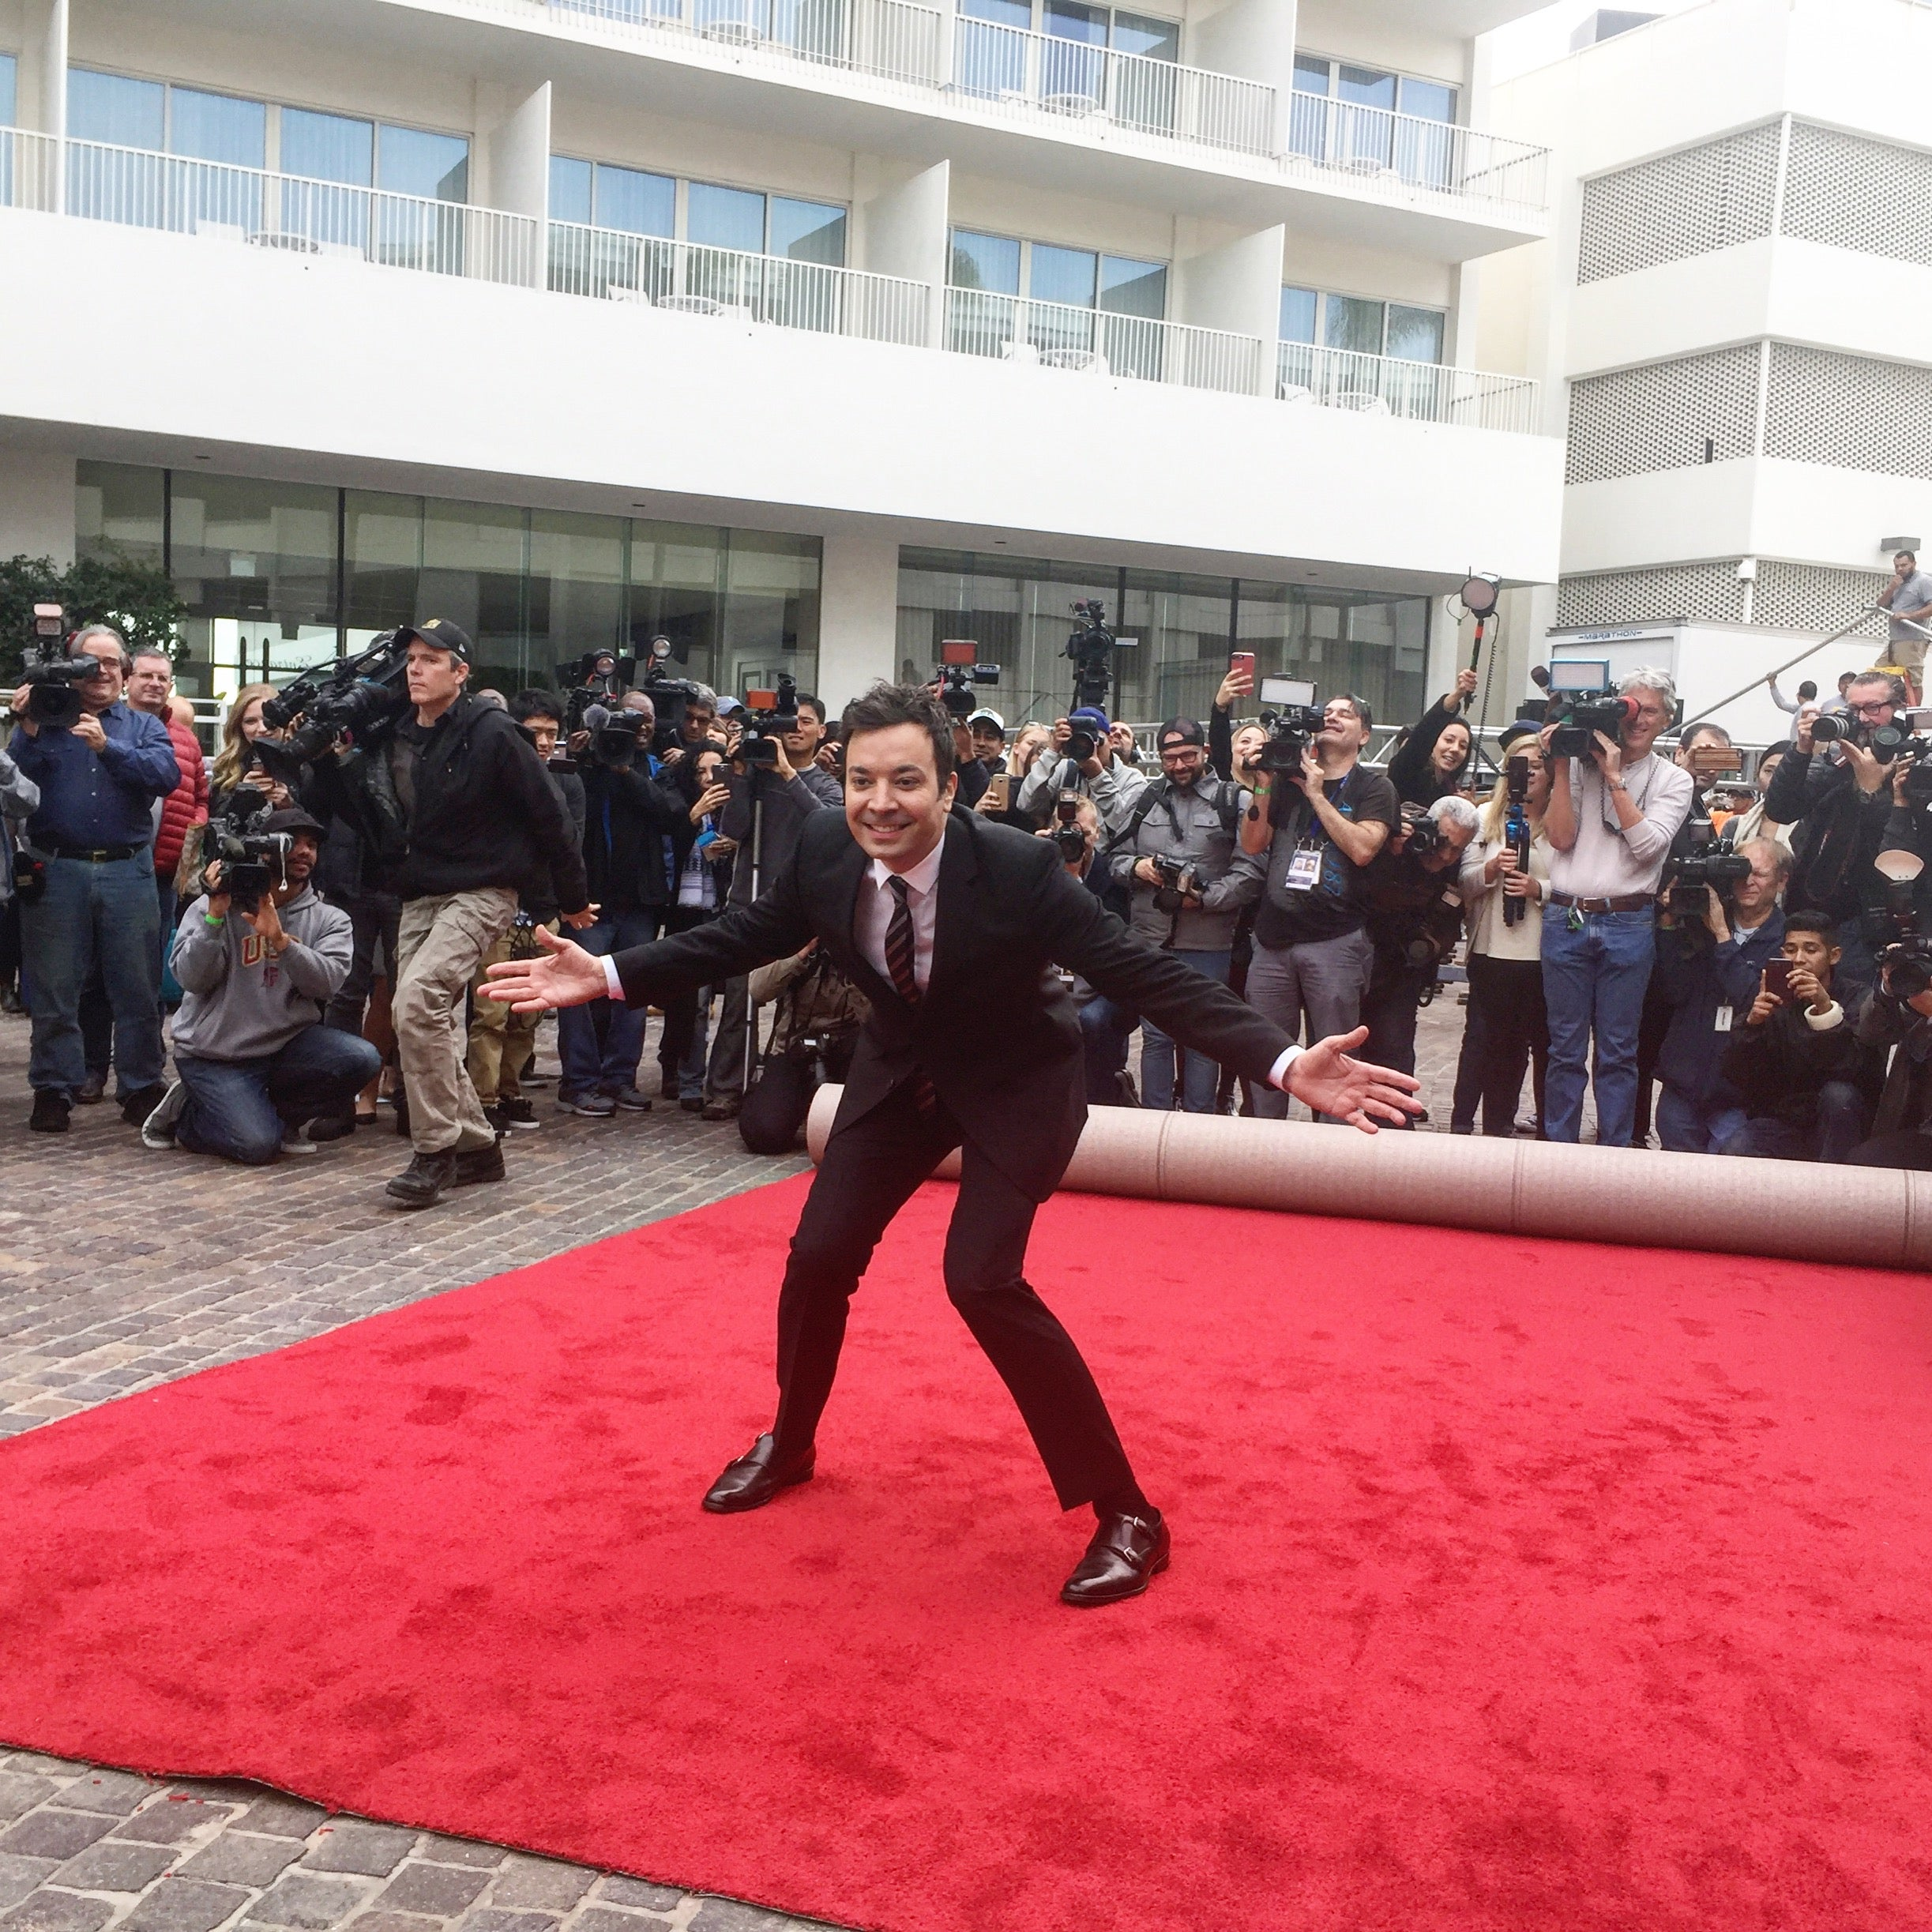 Jimmy Fallon rolls out the red carpet for the 74th Golden Globe Awards